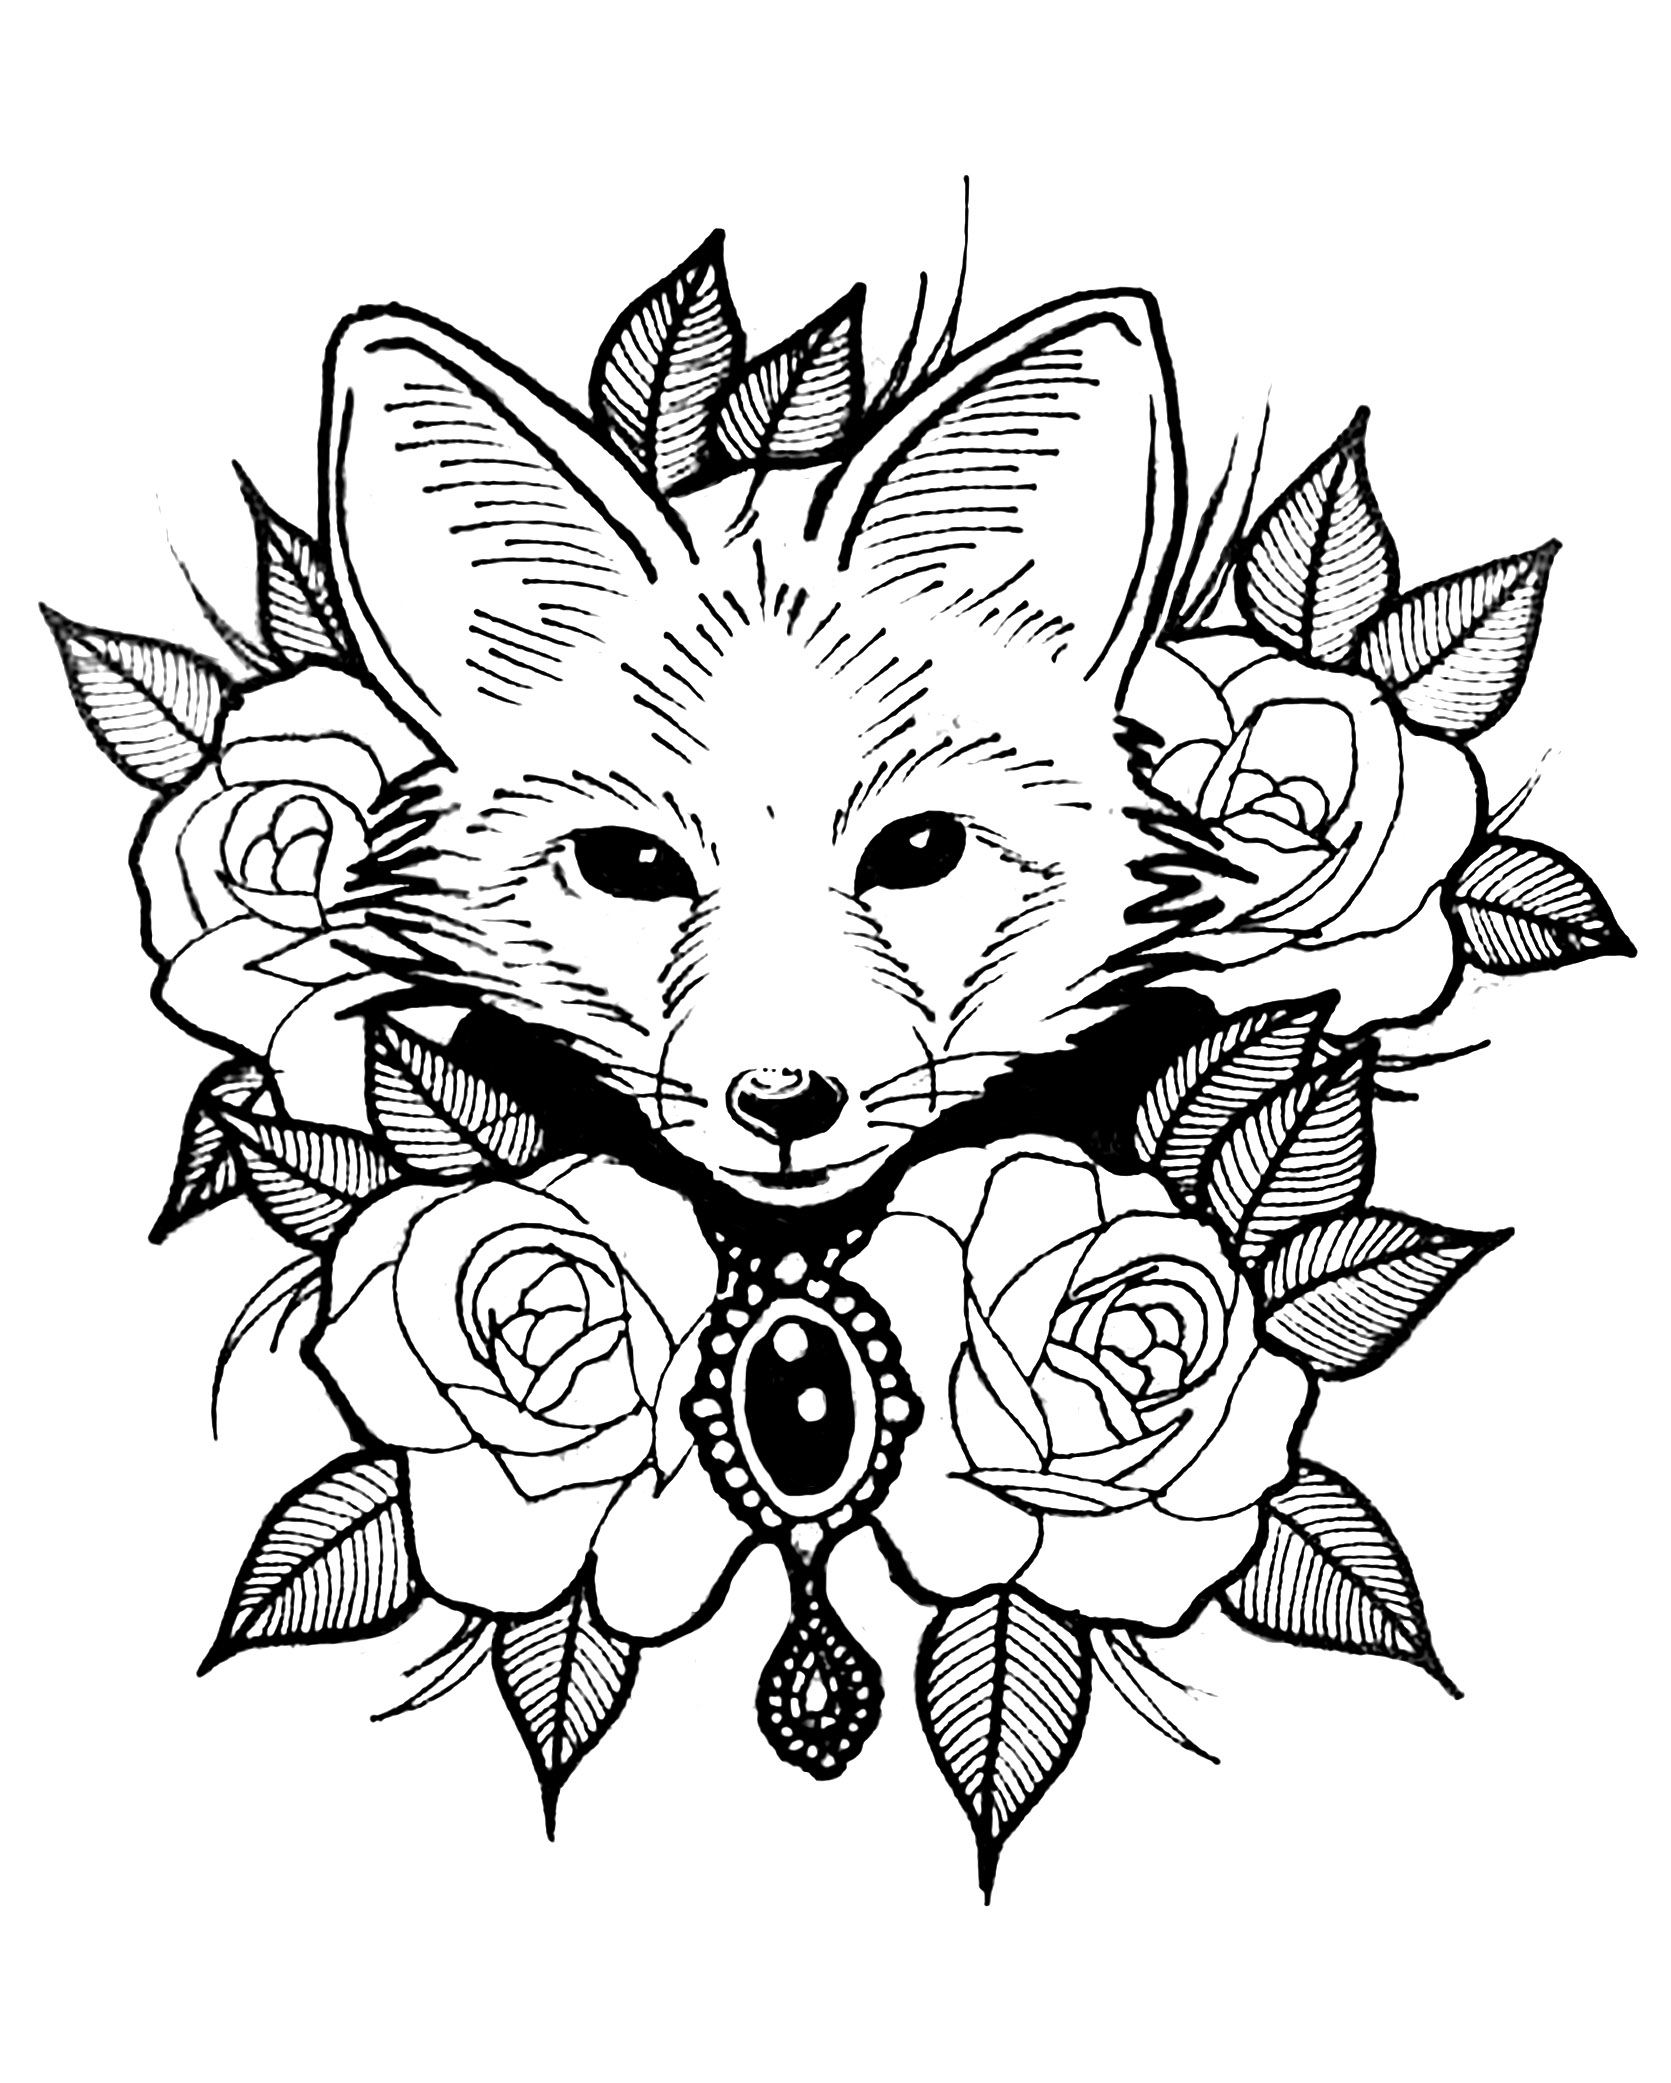 Free coloring pages for adults of animals - Download Coloring Page